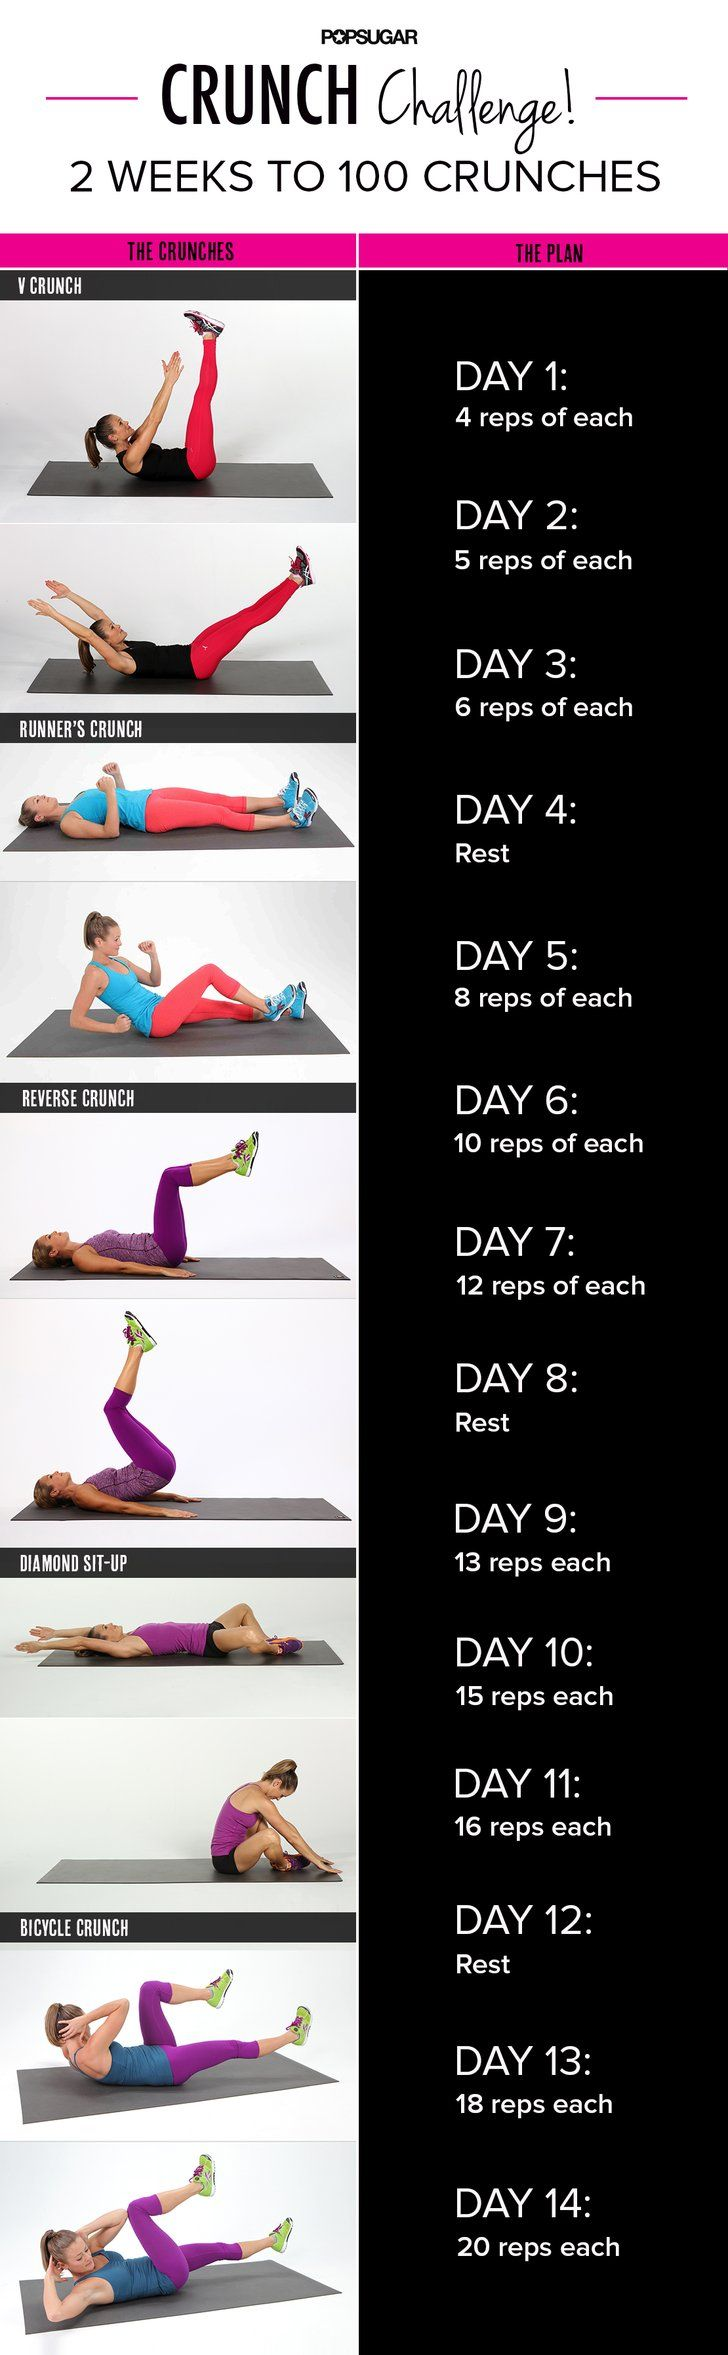 Pin for Later: Transform Your Abs With This 2-Week Crunch Challenge The Plan When it comes to working your abs, the devil is in the details, so keep scrolling to learn how to perform these crunches correctly.